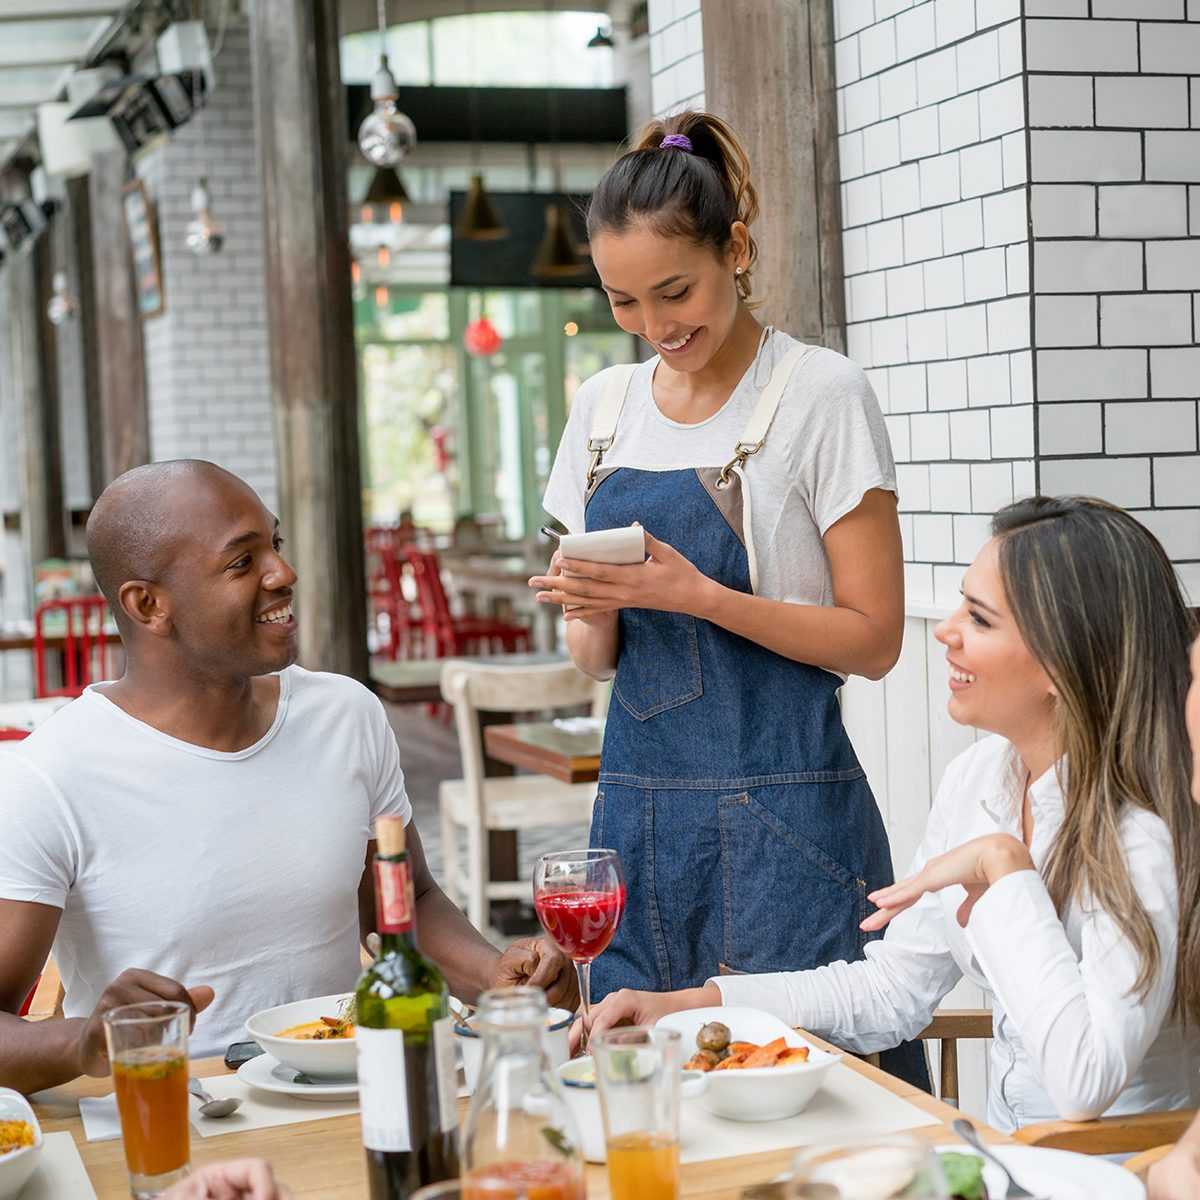 Happy waitress serving a group of people eating together at a restaurant